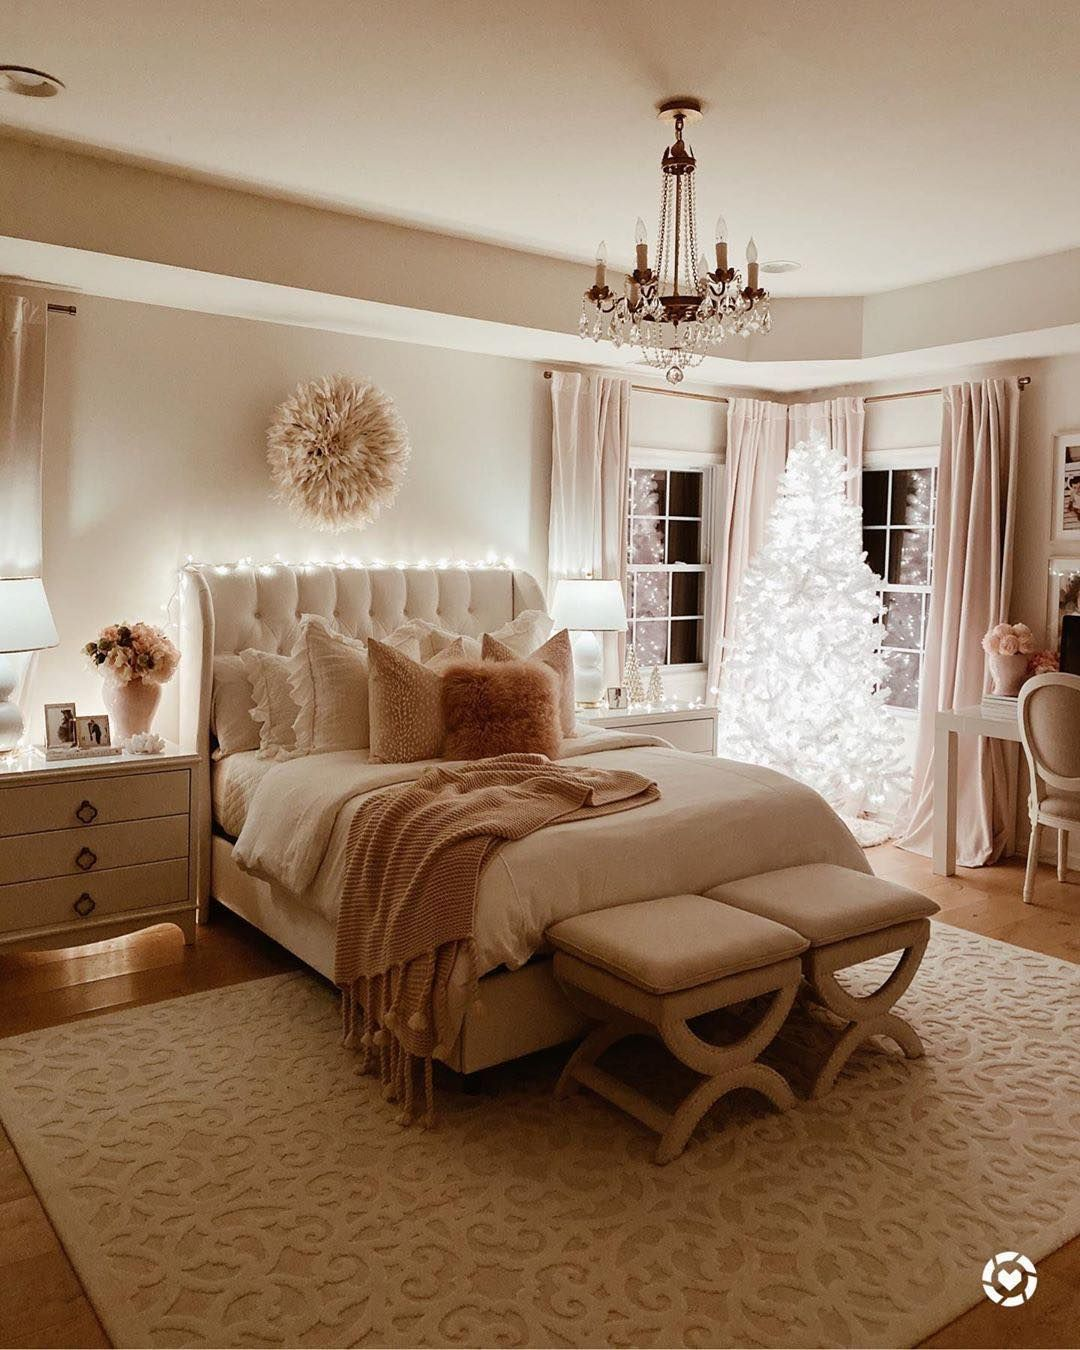 Be Sure To Check Out The Designer For More Info On This Wonderful Design Luxurious Bedrooms Room Inspiration Bedroom Master Bedrooms Decor Beige bedroom decorating ideas